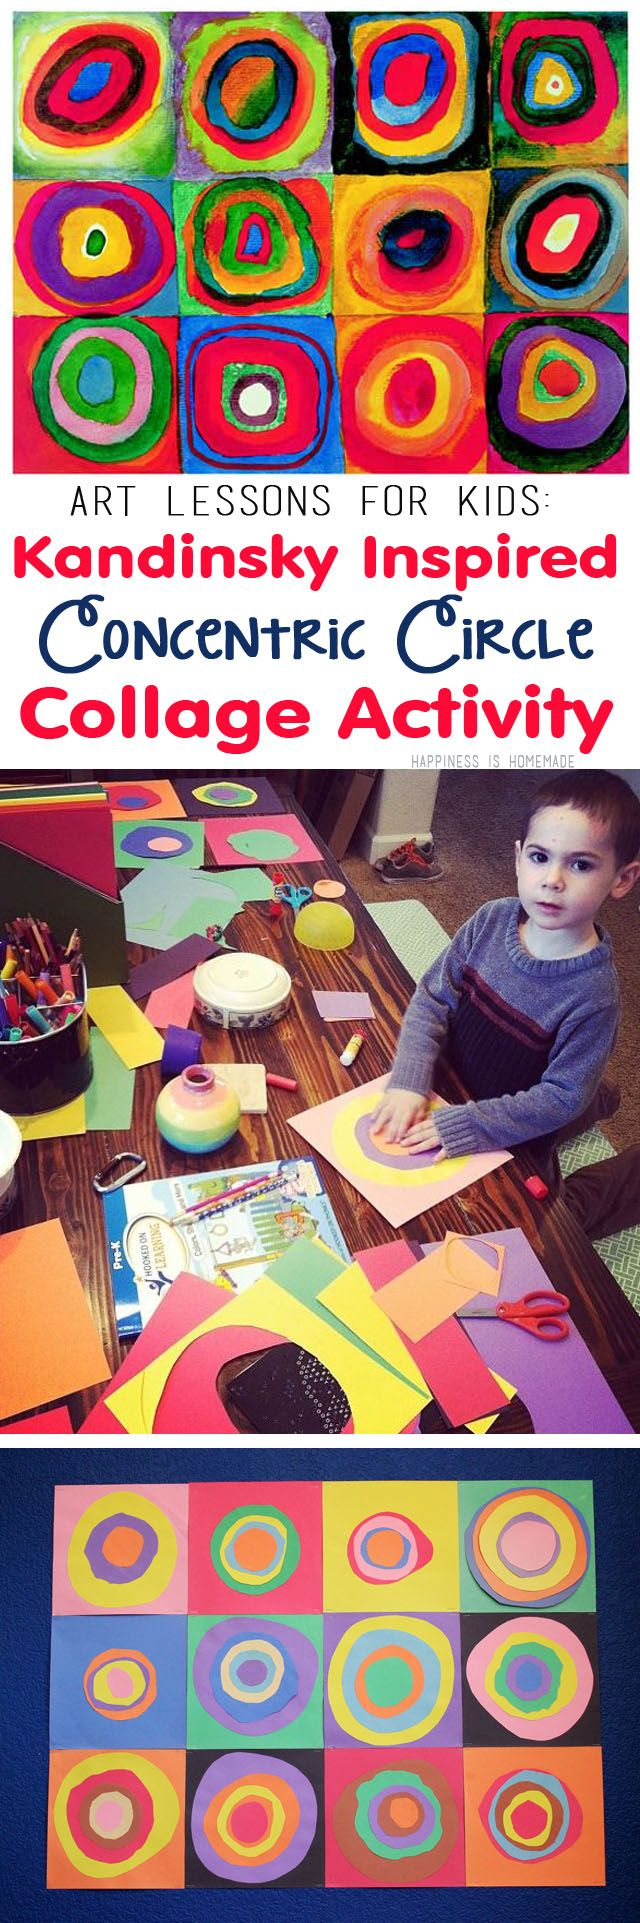 Art Lessons for Kids - Kandinsky Inspired Concentric Circles Collage Activity. This is great for homeschool families or anyone who has kids who love art!